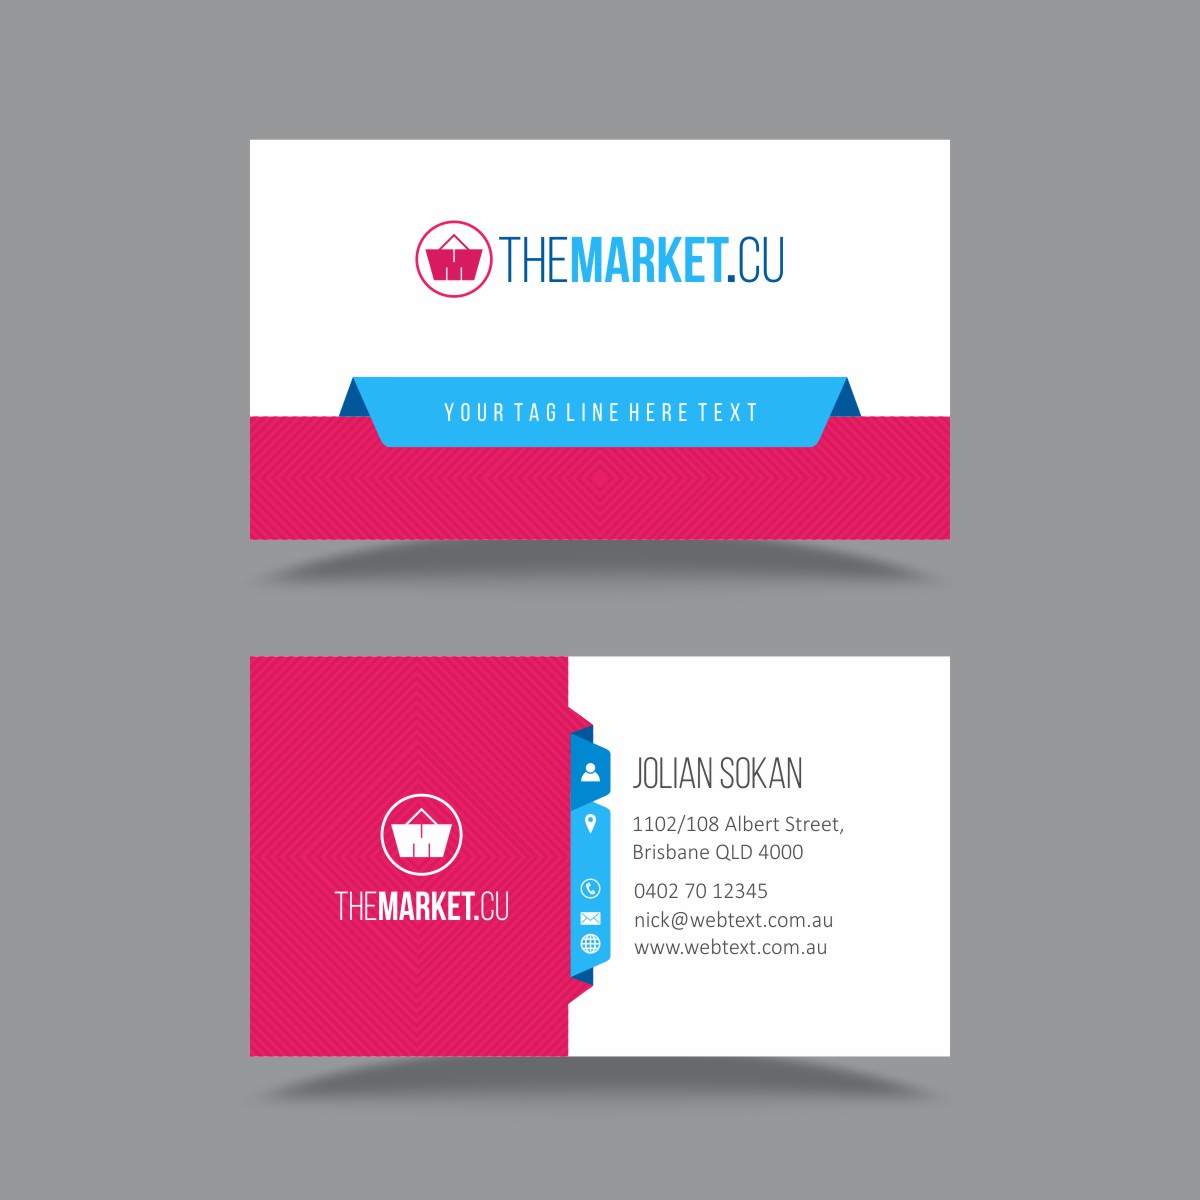 Ecommerce business card template online logo makers blog ecommerce business card template reheart